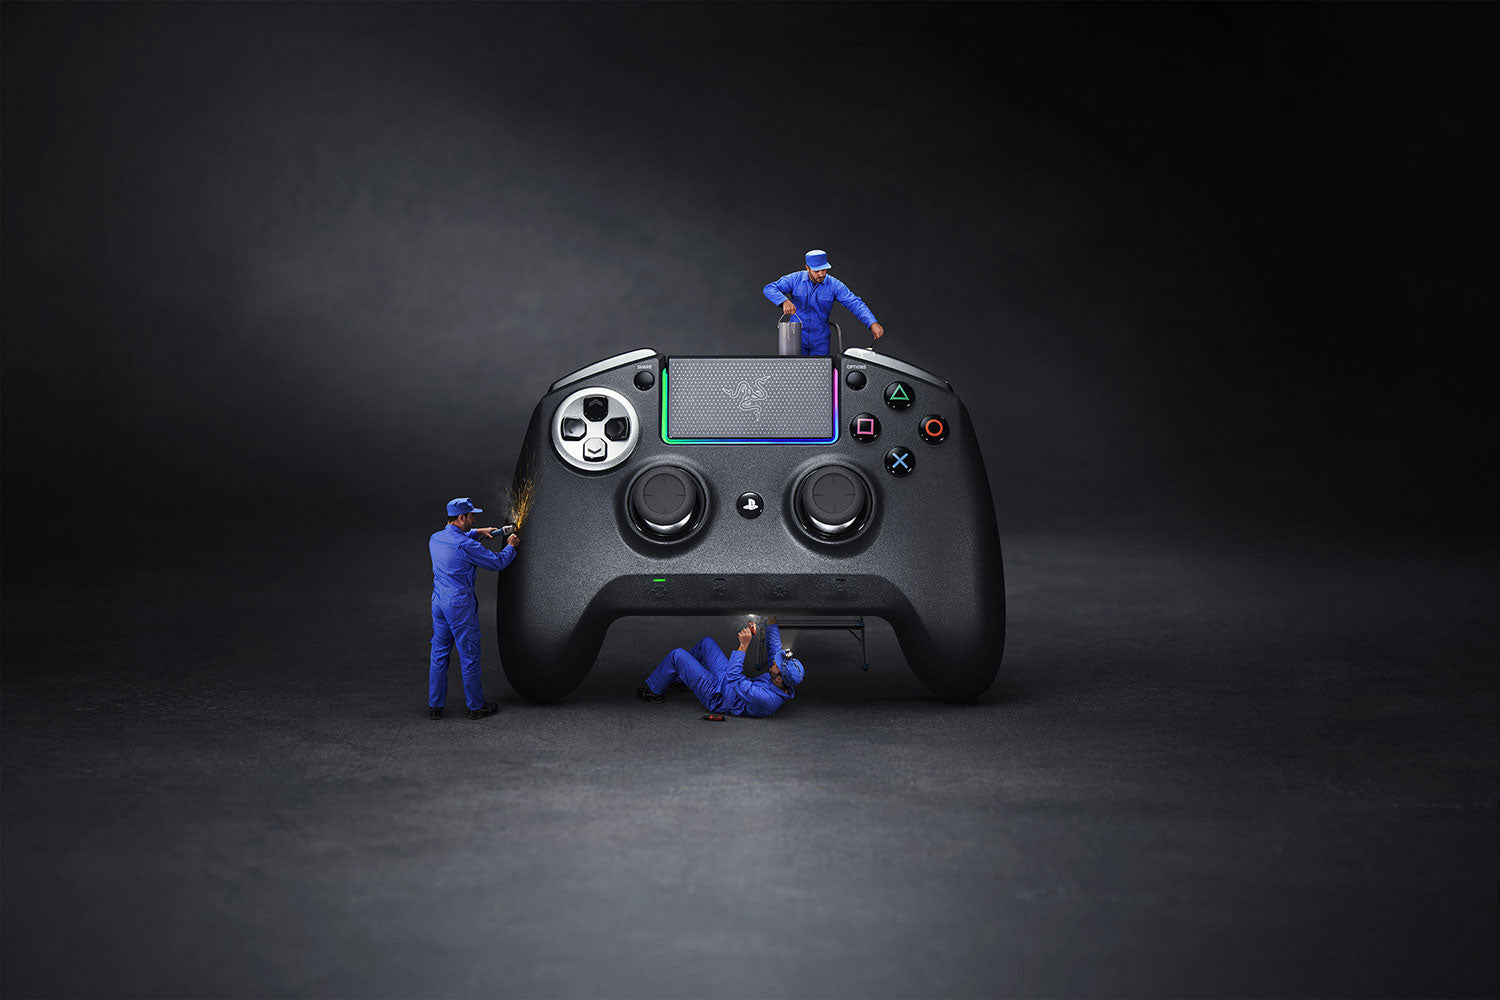 Razer Raiju Ultimate PS4 Wireless Controller with Razer Chroma